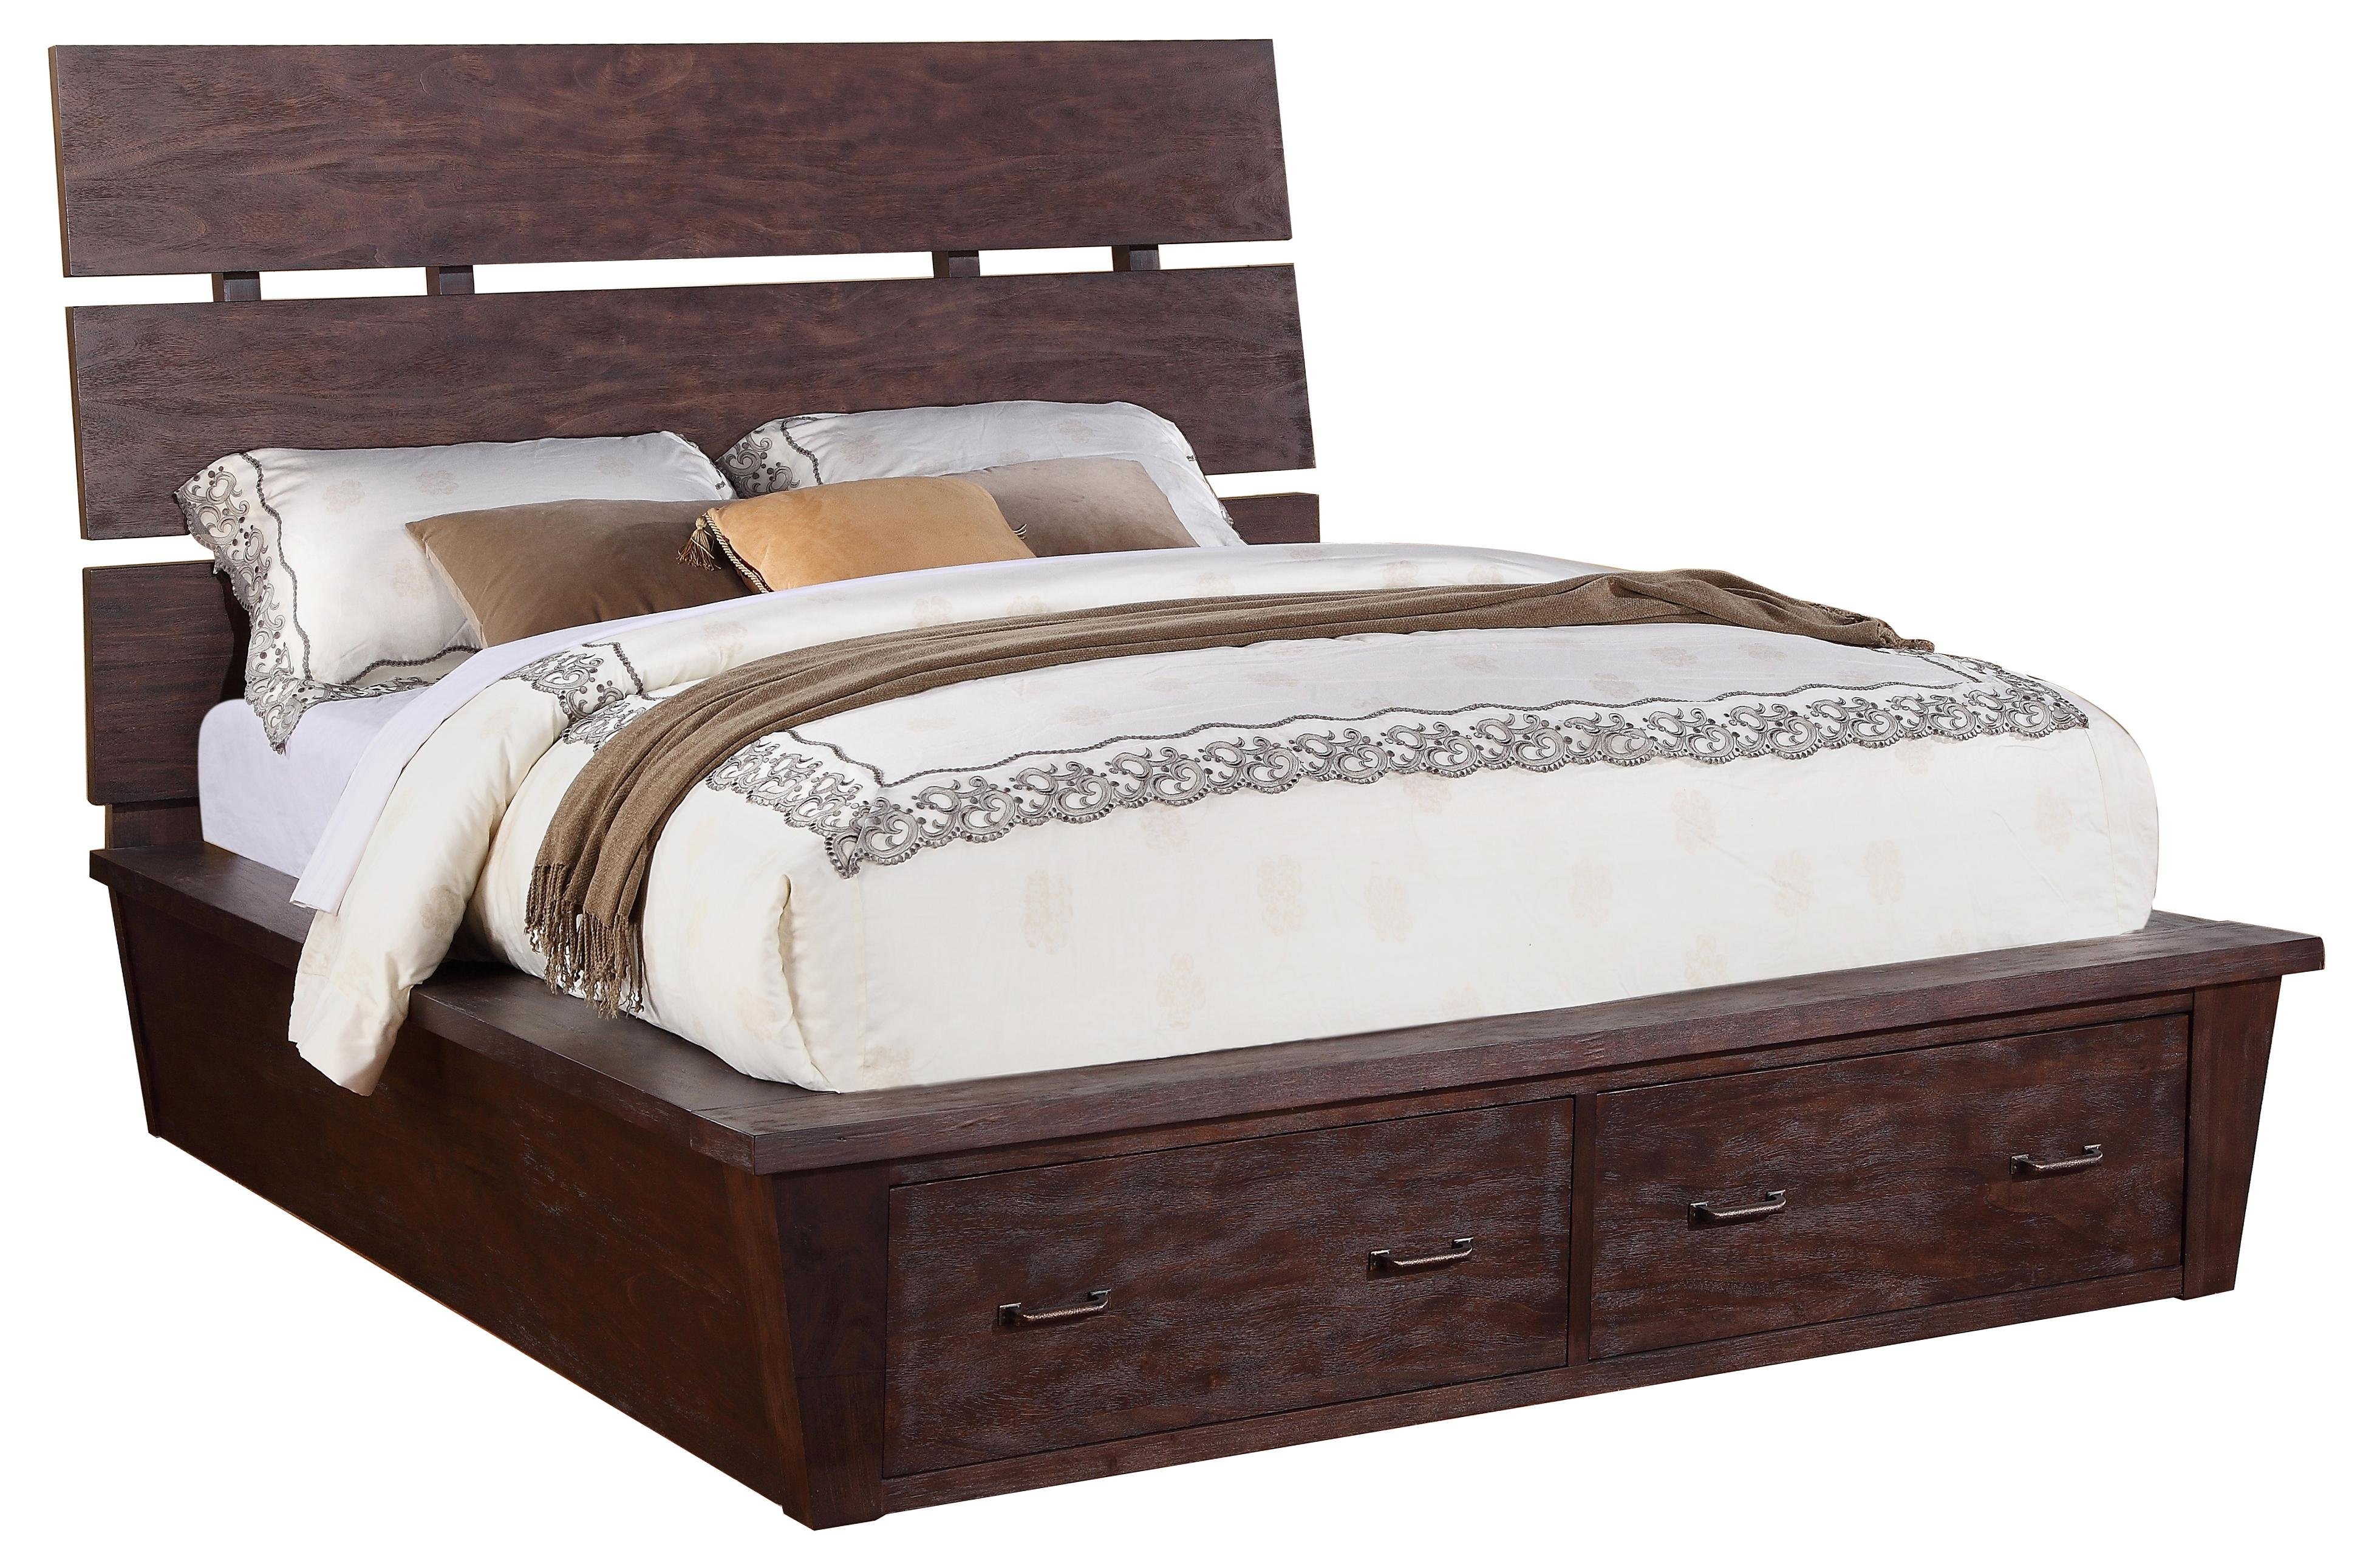 Marlo Bedroom Furniture Queen Platform Storage Bed With 2 Drawers By Riverside Furniture